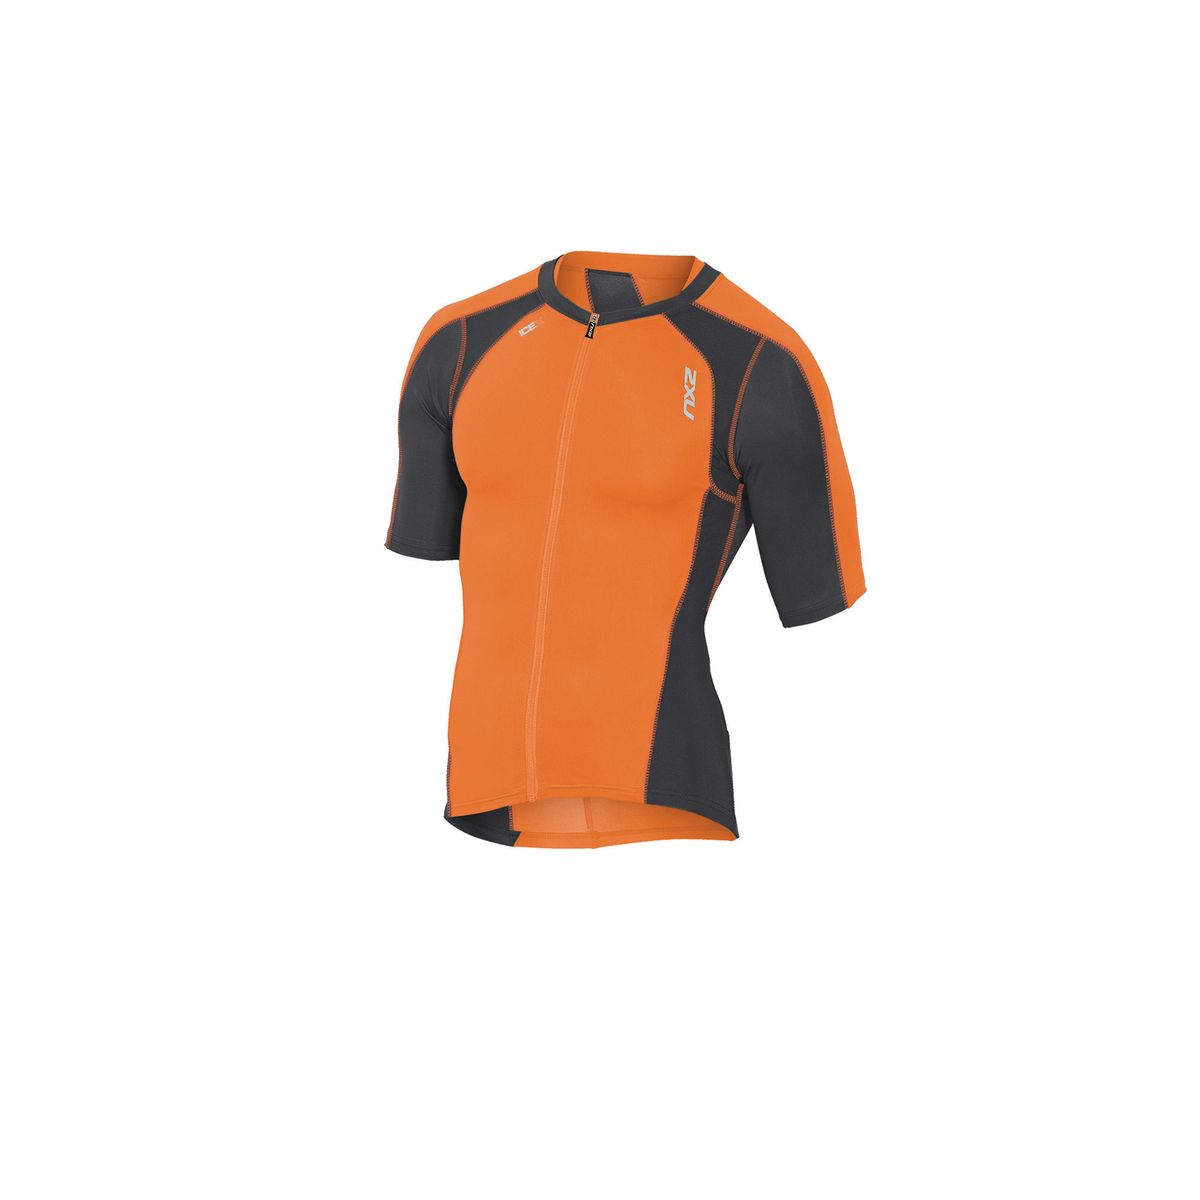 COMPRESSION SLEEVED Tri Top kurzarm